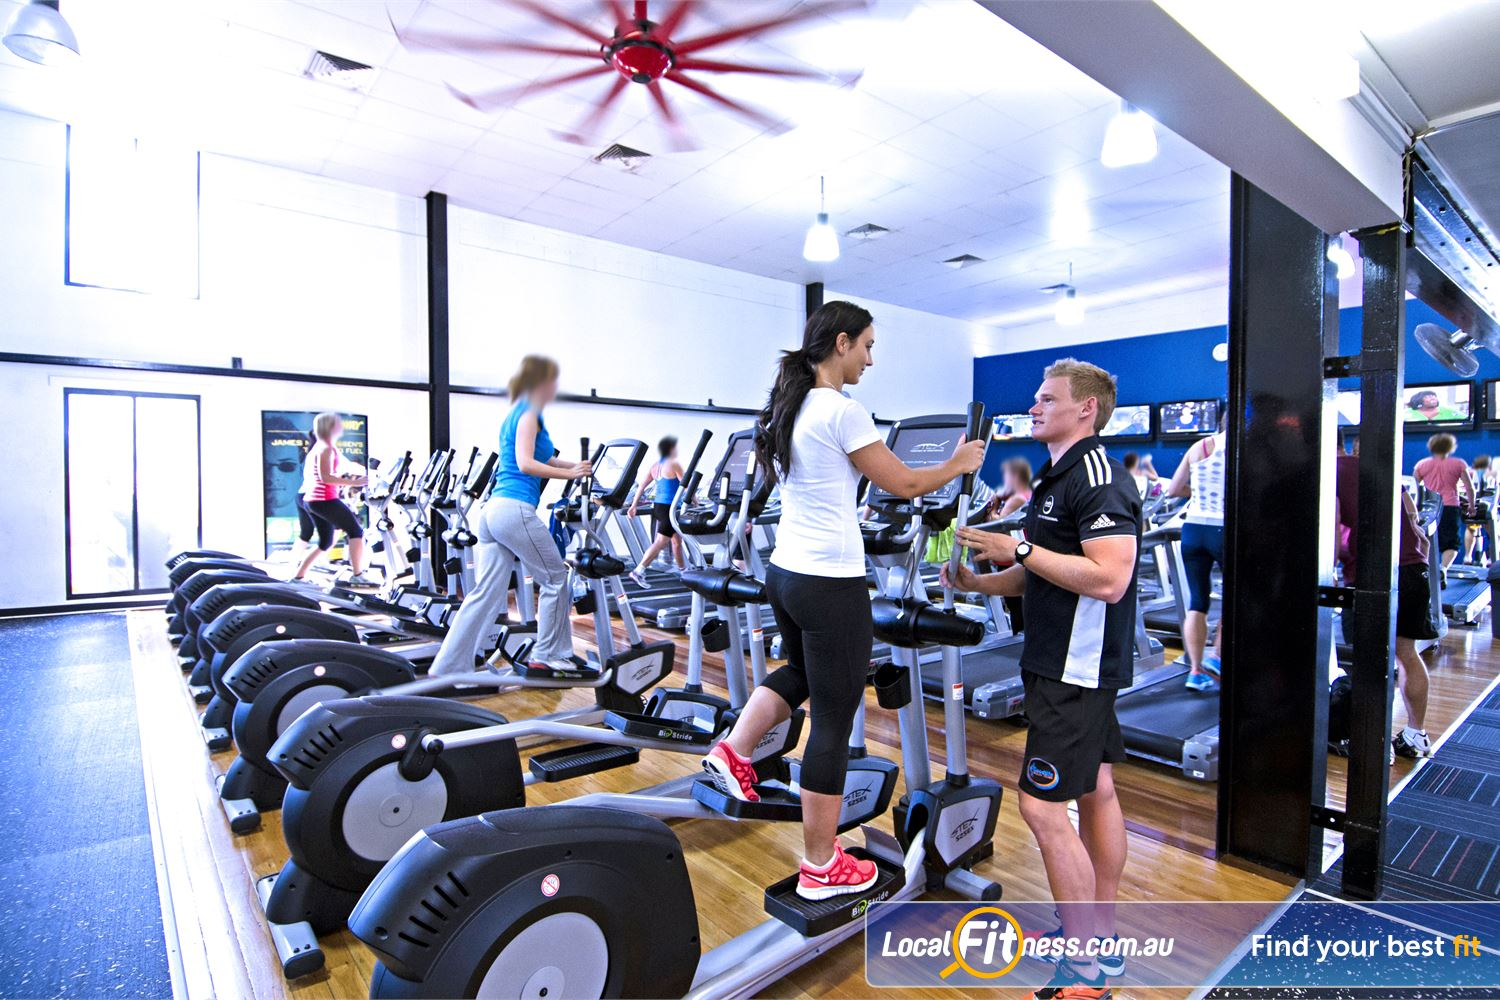 Goodlife Health Clubs Graceville The latest cycle bikes, cross trainers and treadmills from Stex Fitness.